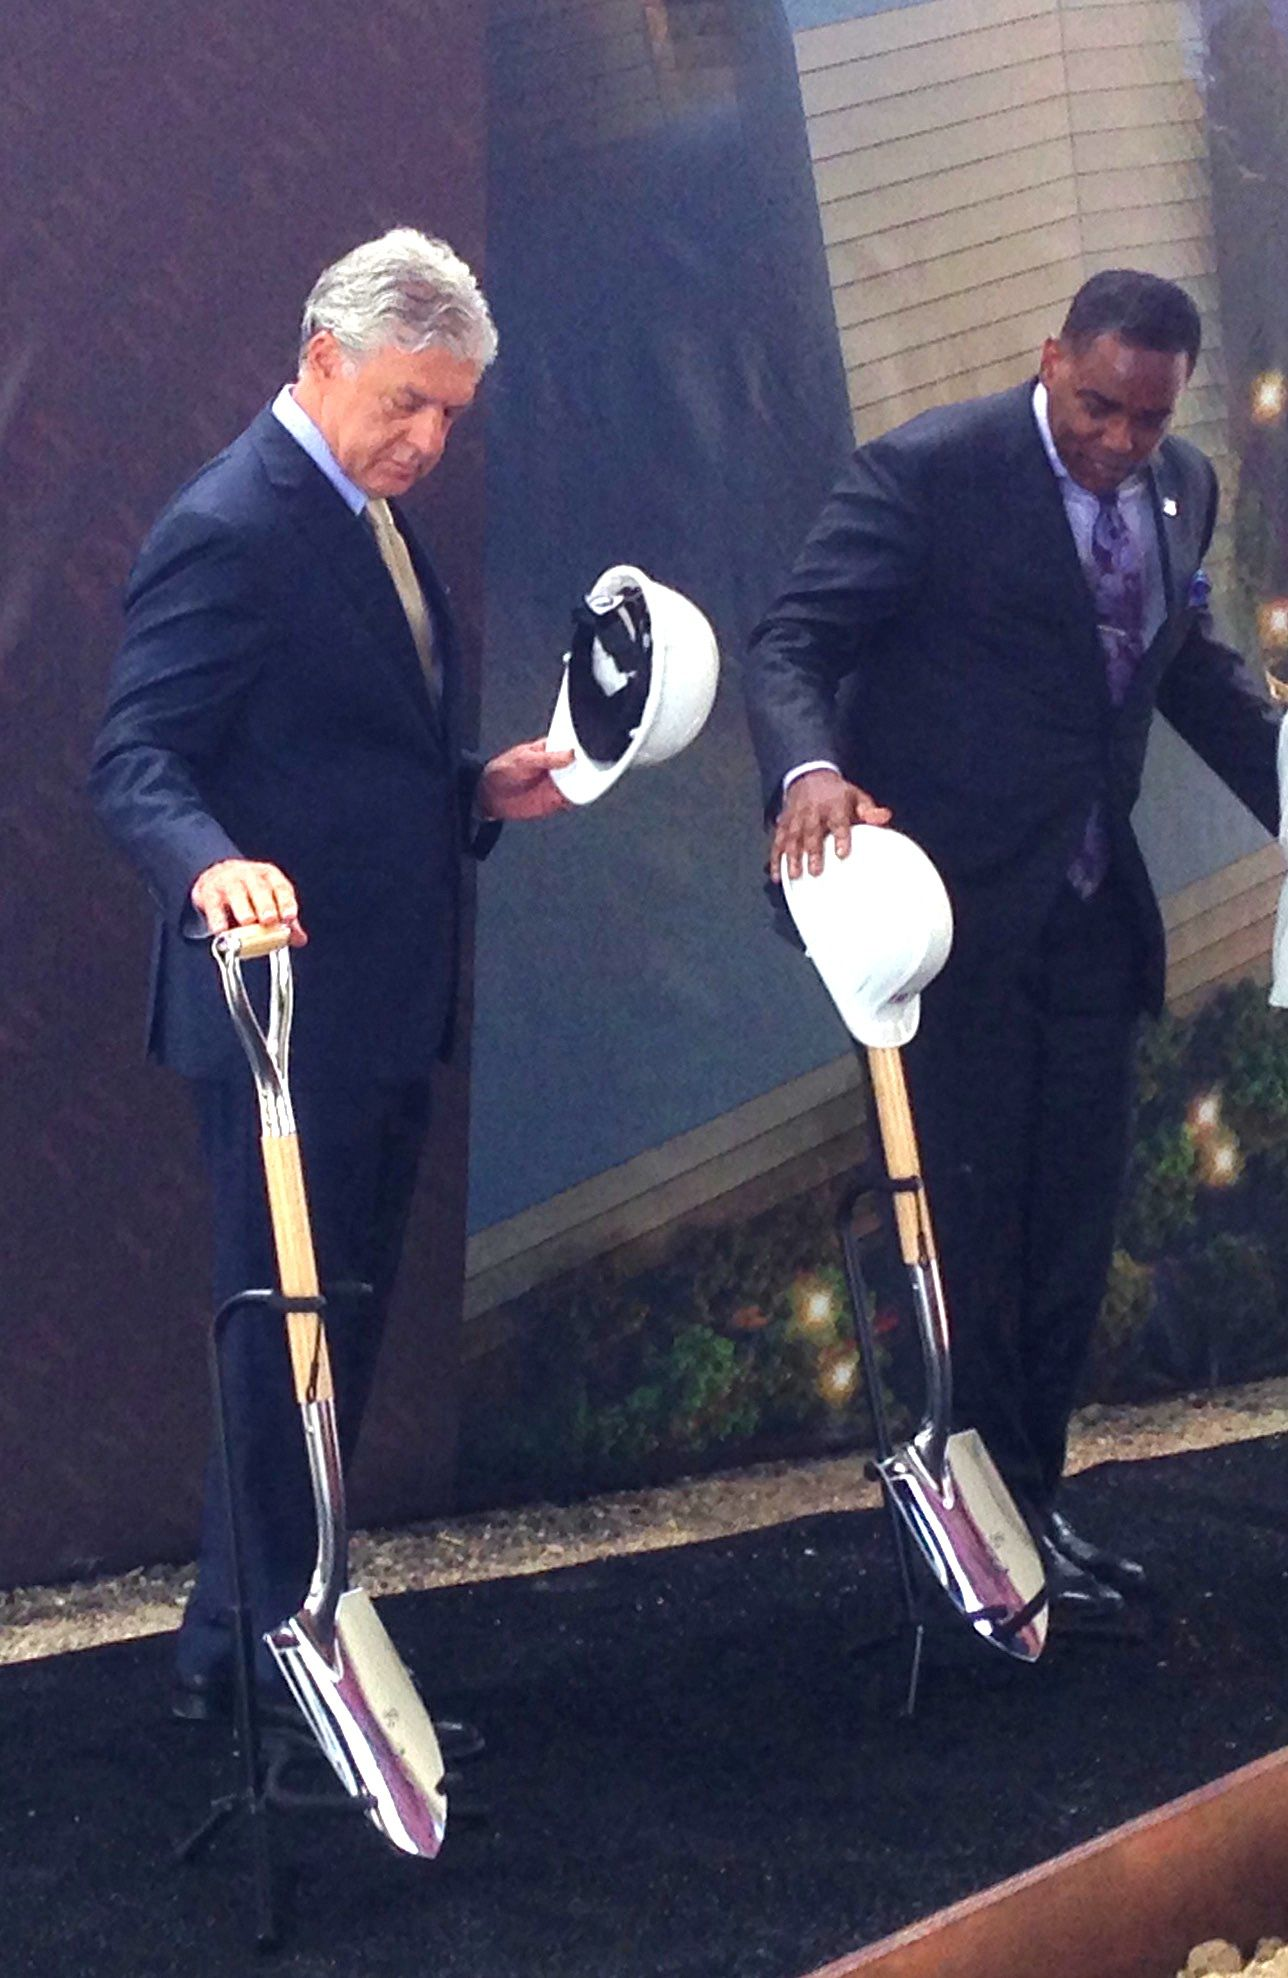 Legacy West developer Fehmi Karahan and Plano Mayor Harry LaRosiliere took part in the groundbreaking.